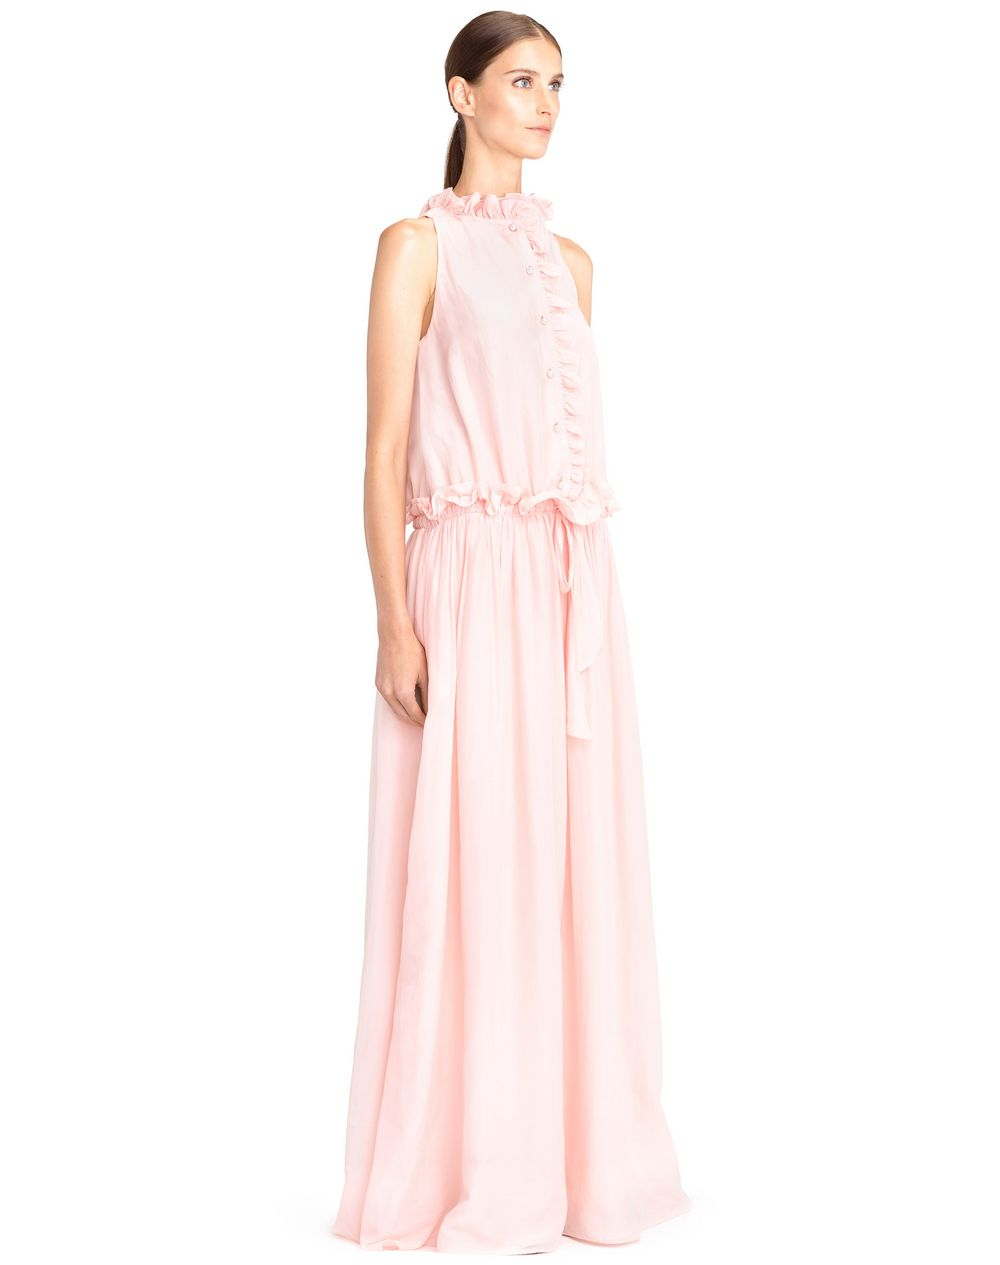 LONG COTTON VOILE DRESS - Lanvin